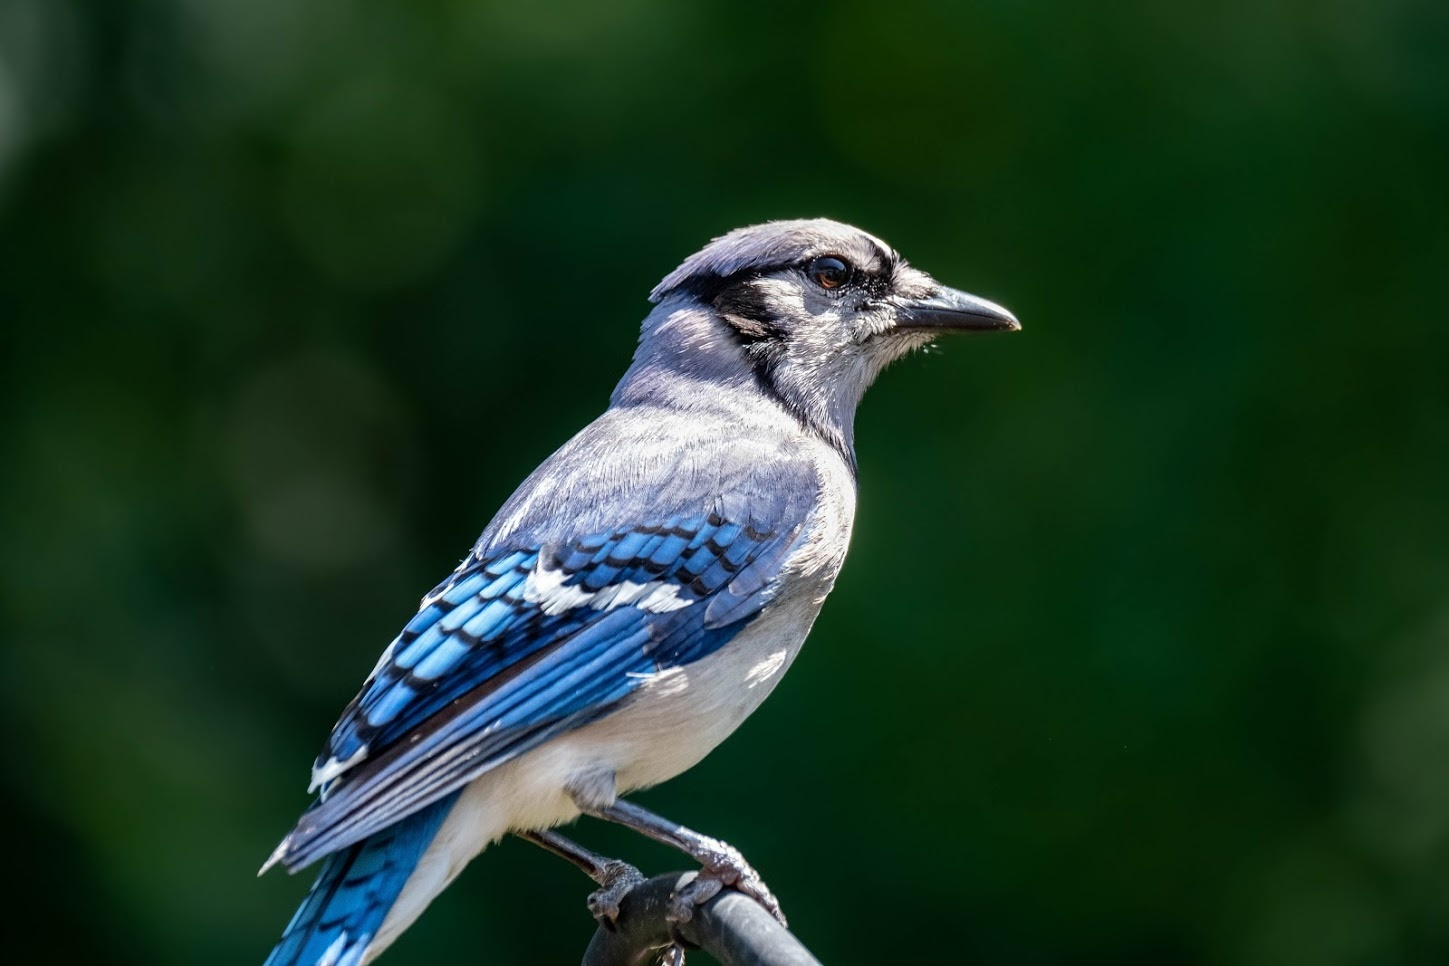 Colorful Bluejay by Mitchell Torjman